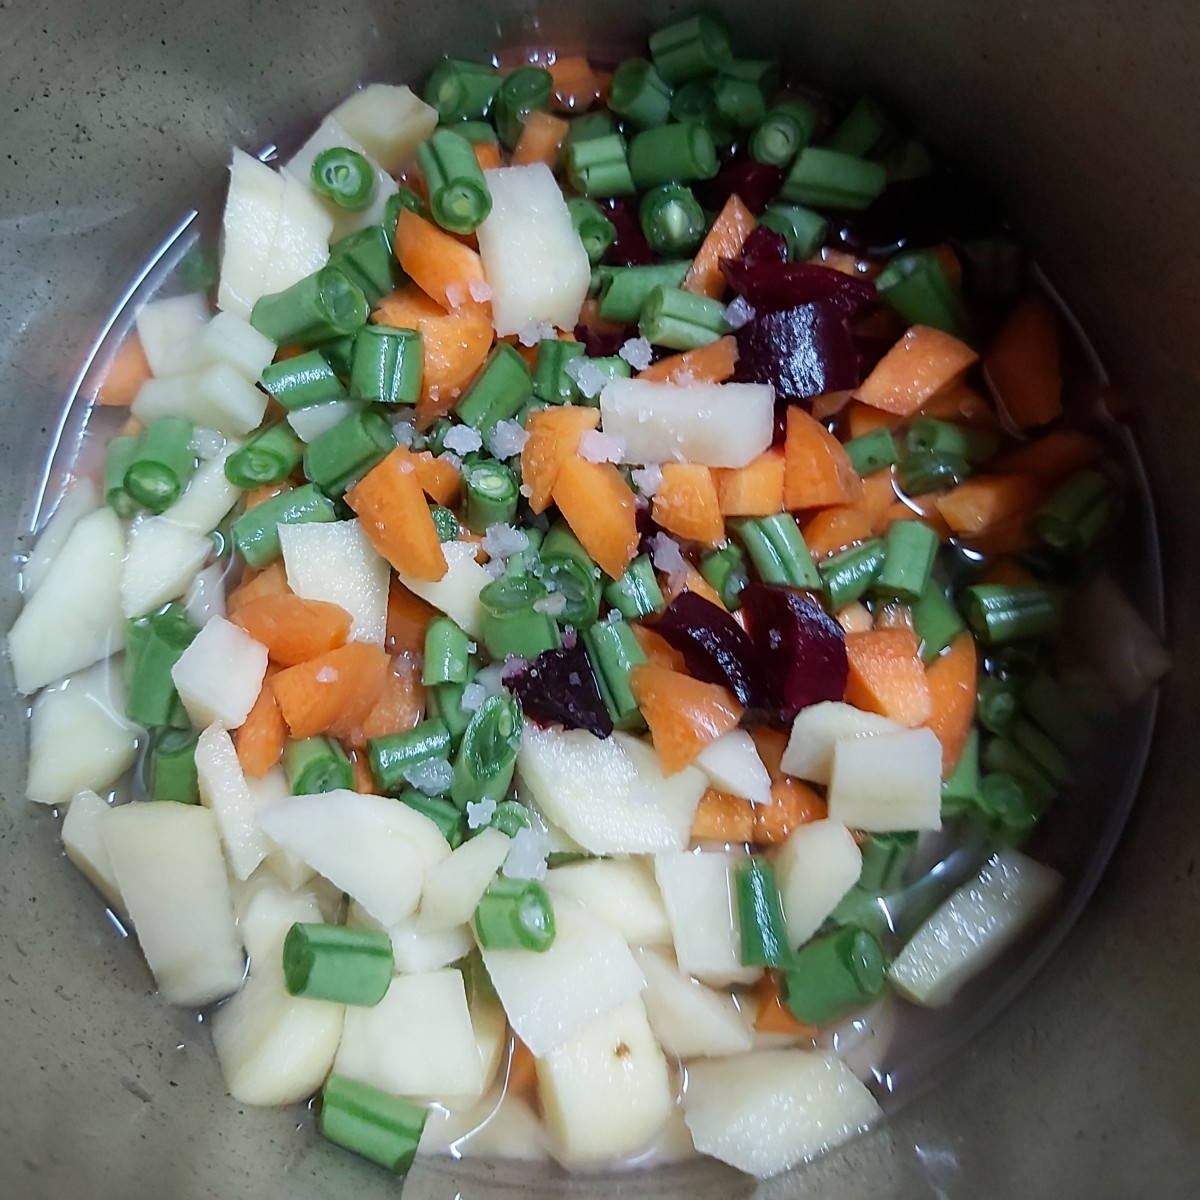 Add 1/2 cup of water and salt to taste (add just enough water to immerse the vegetables, not too much).